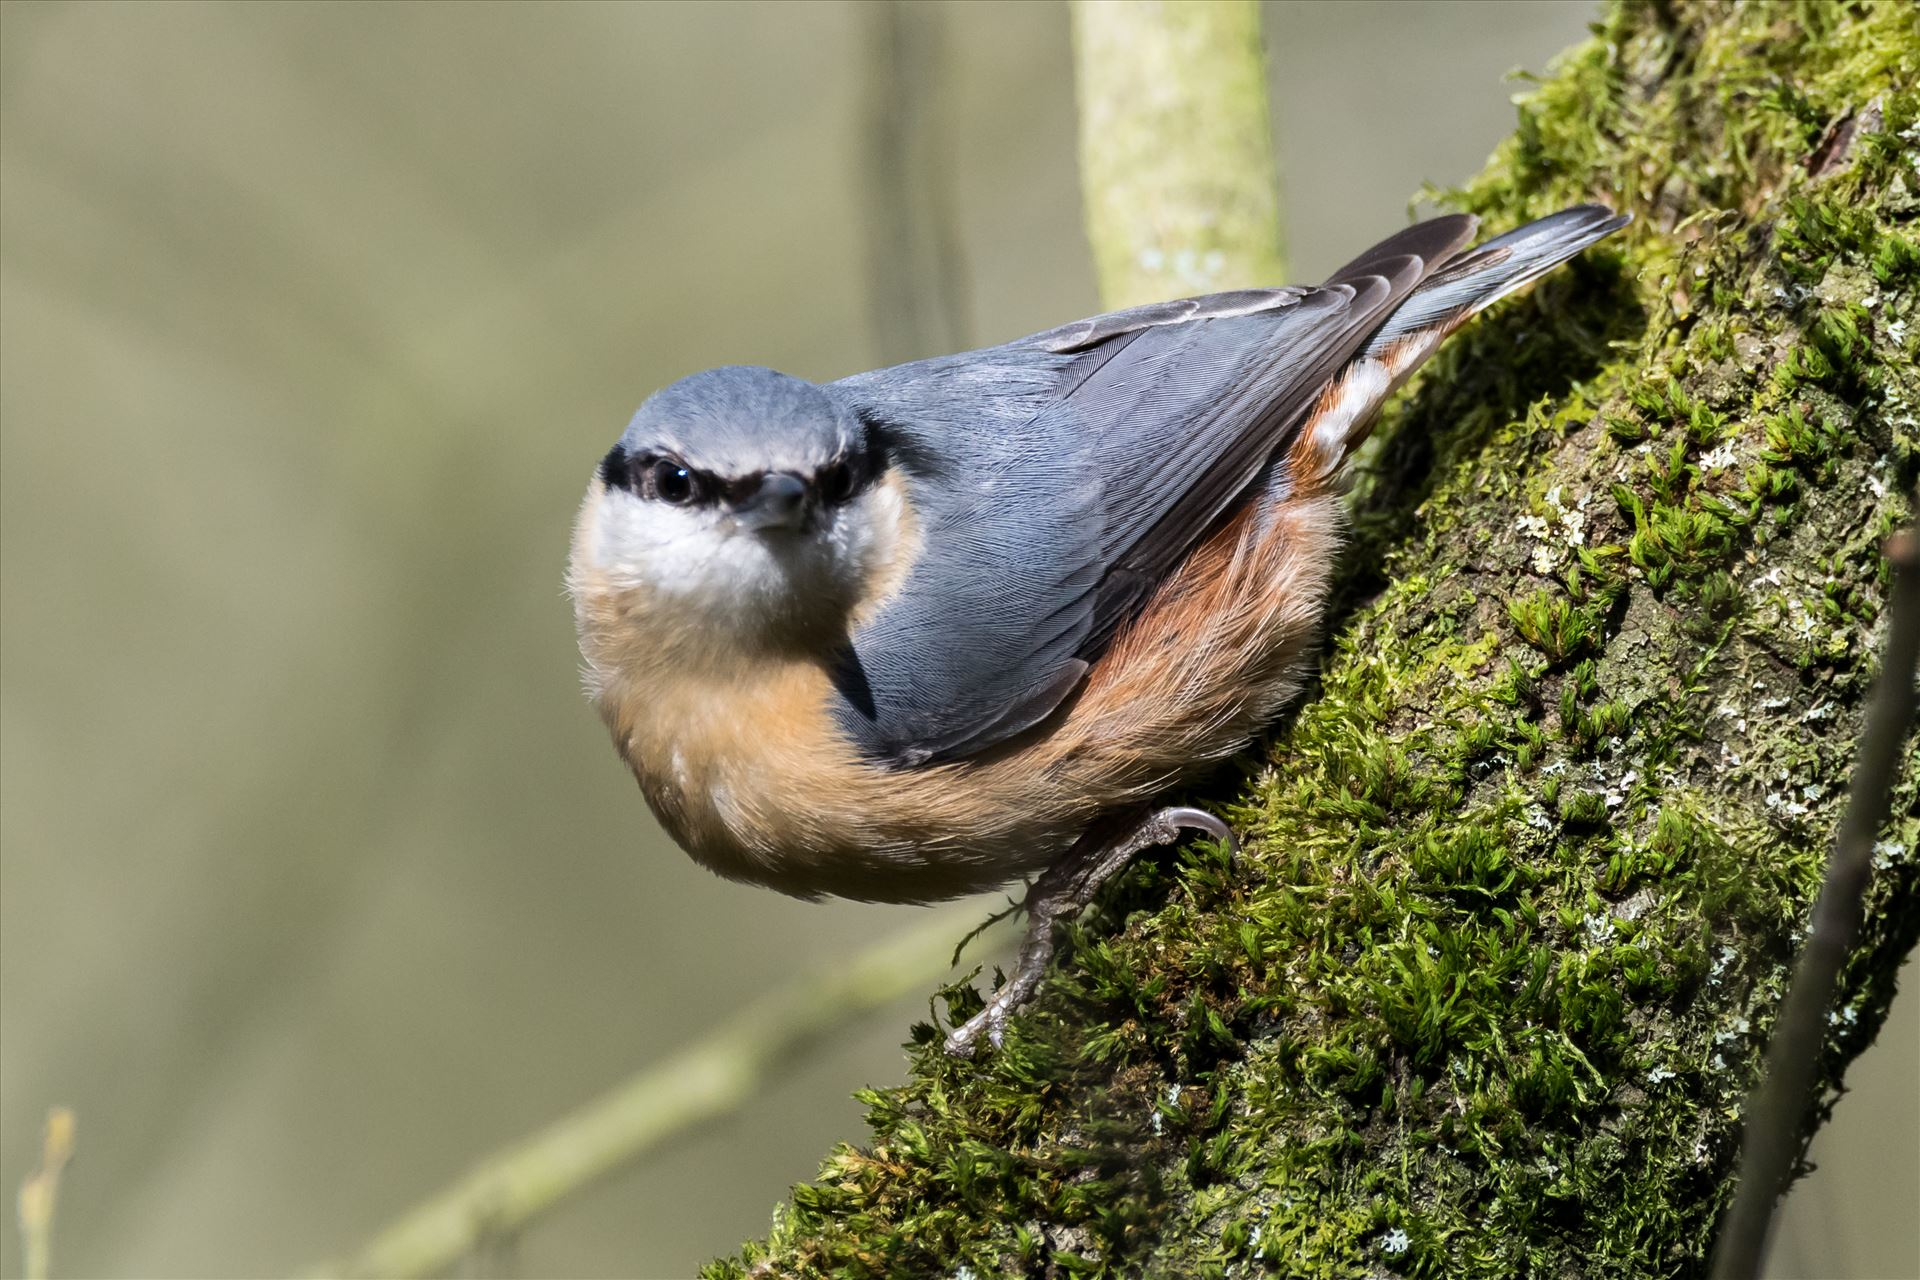 Nut Hatch - One of my favorite birds to photograph, thats if they stay still long enough by AJ Stoves Photography